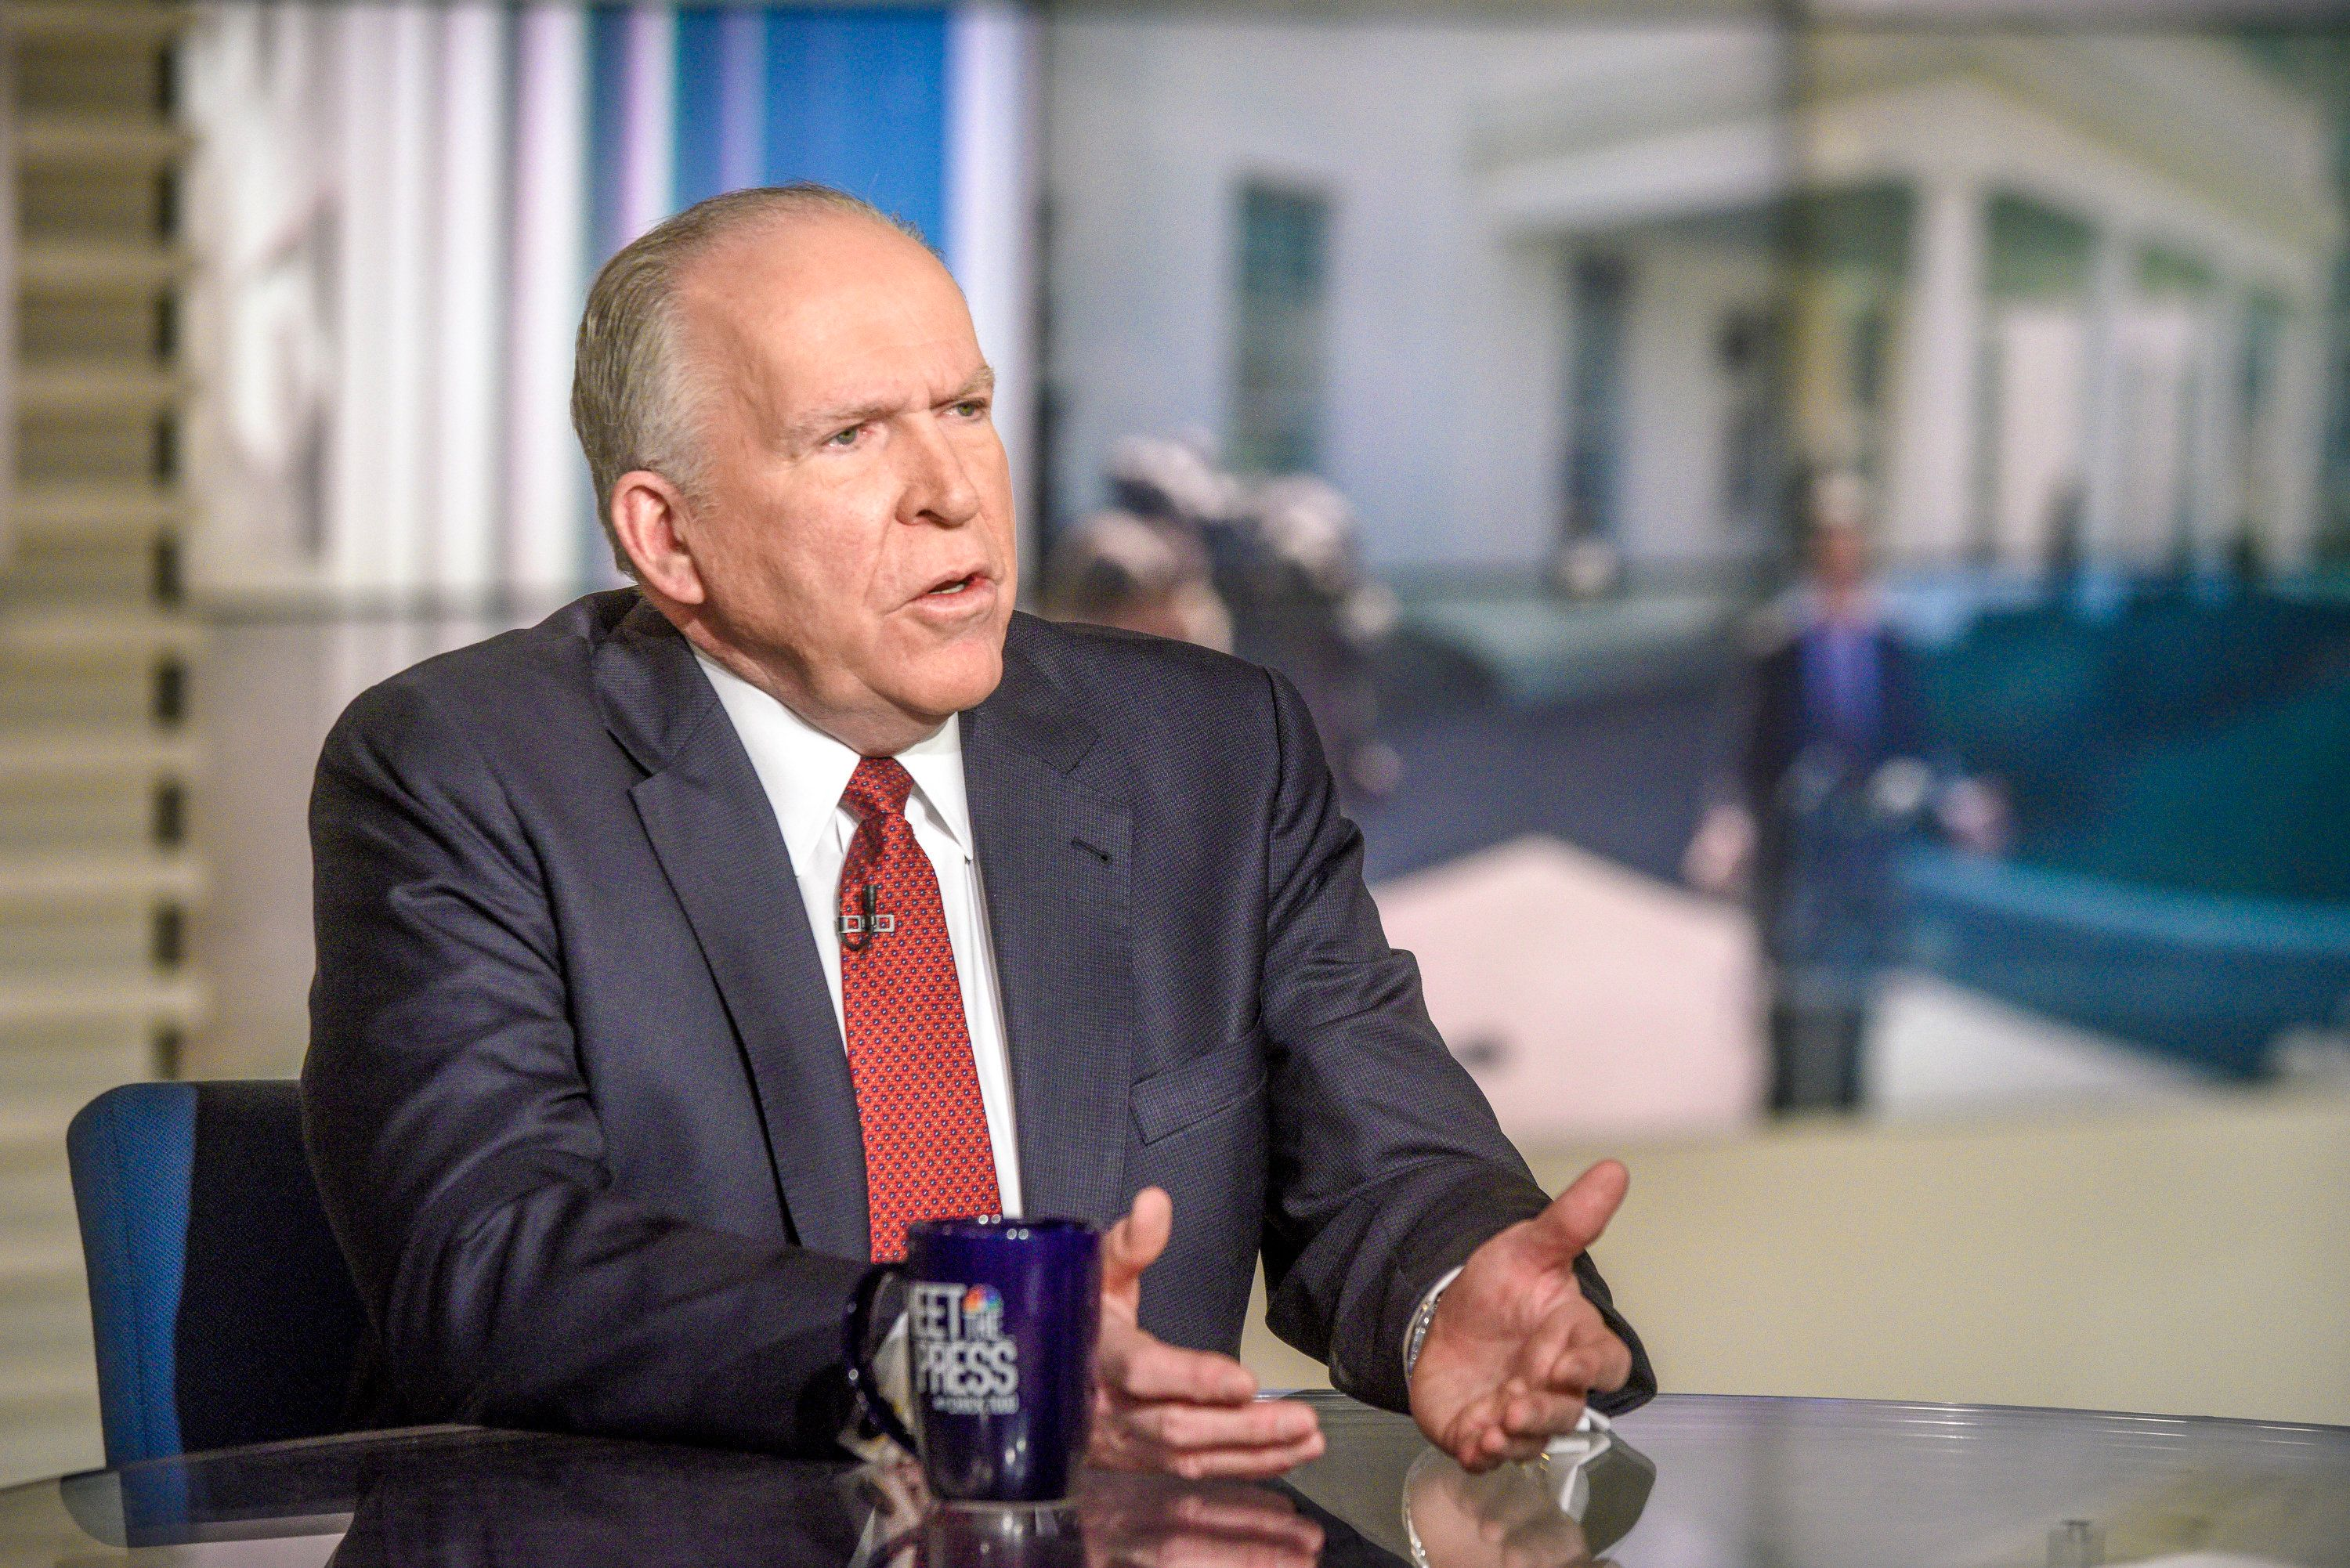 MEET THE PRESS -- Pictured: (l-r)   John Brennan, Former CIA Director, and moderator Chuck Todd appear on 'Meet the Press' in Washington, D.C., Sunday, Feb. 4, 2018. (Photo by: William B. Plowman/NBC/NBC NewsWire via Getty Images)